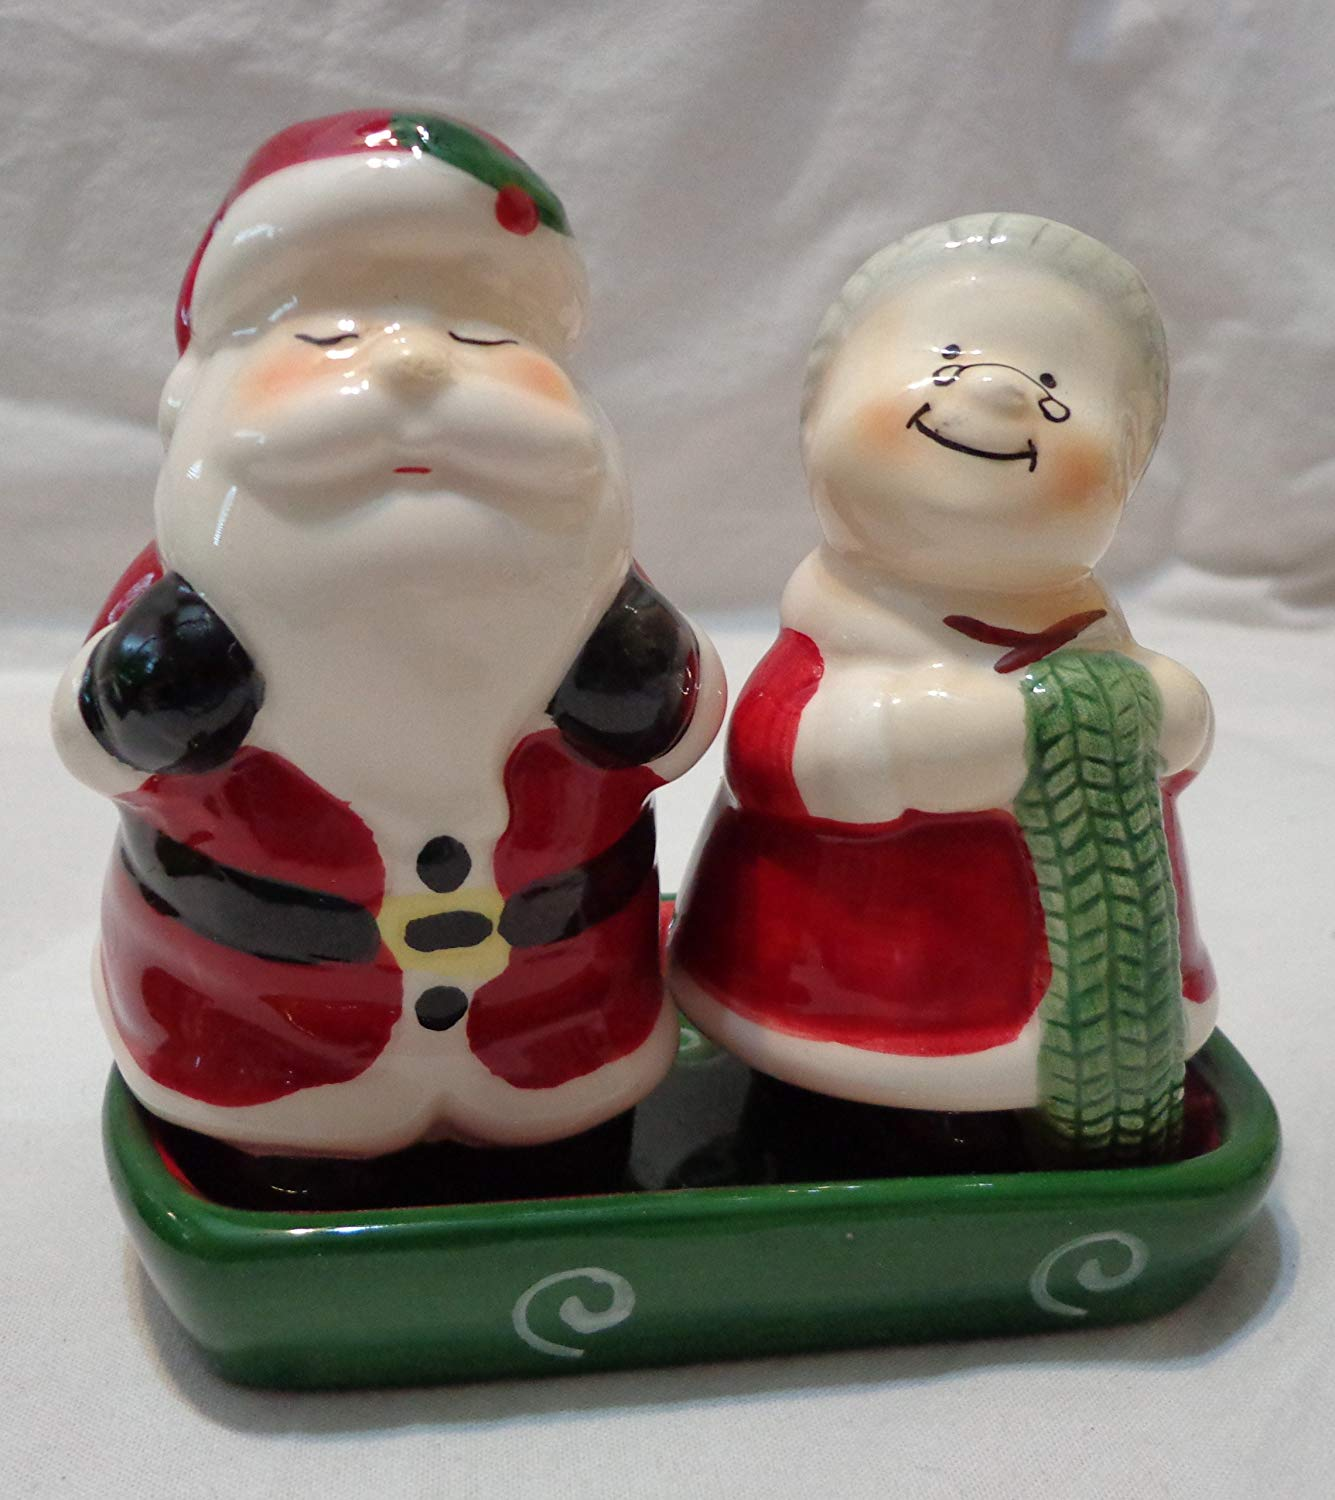 Publix, Mr & Mrs Claus Christmas Ceramic Salt & Pepper Shaker Set with Matching Tray, 4 Inch Figures